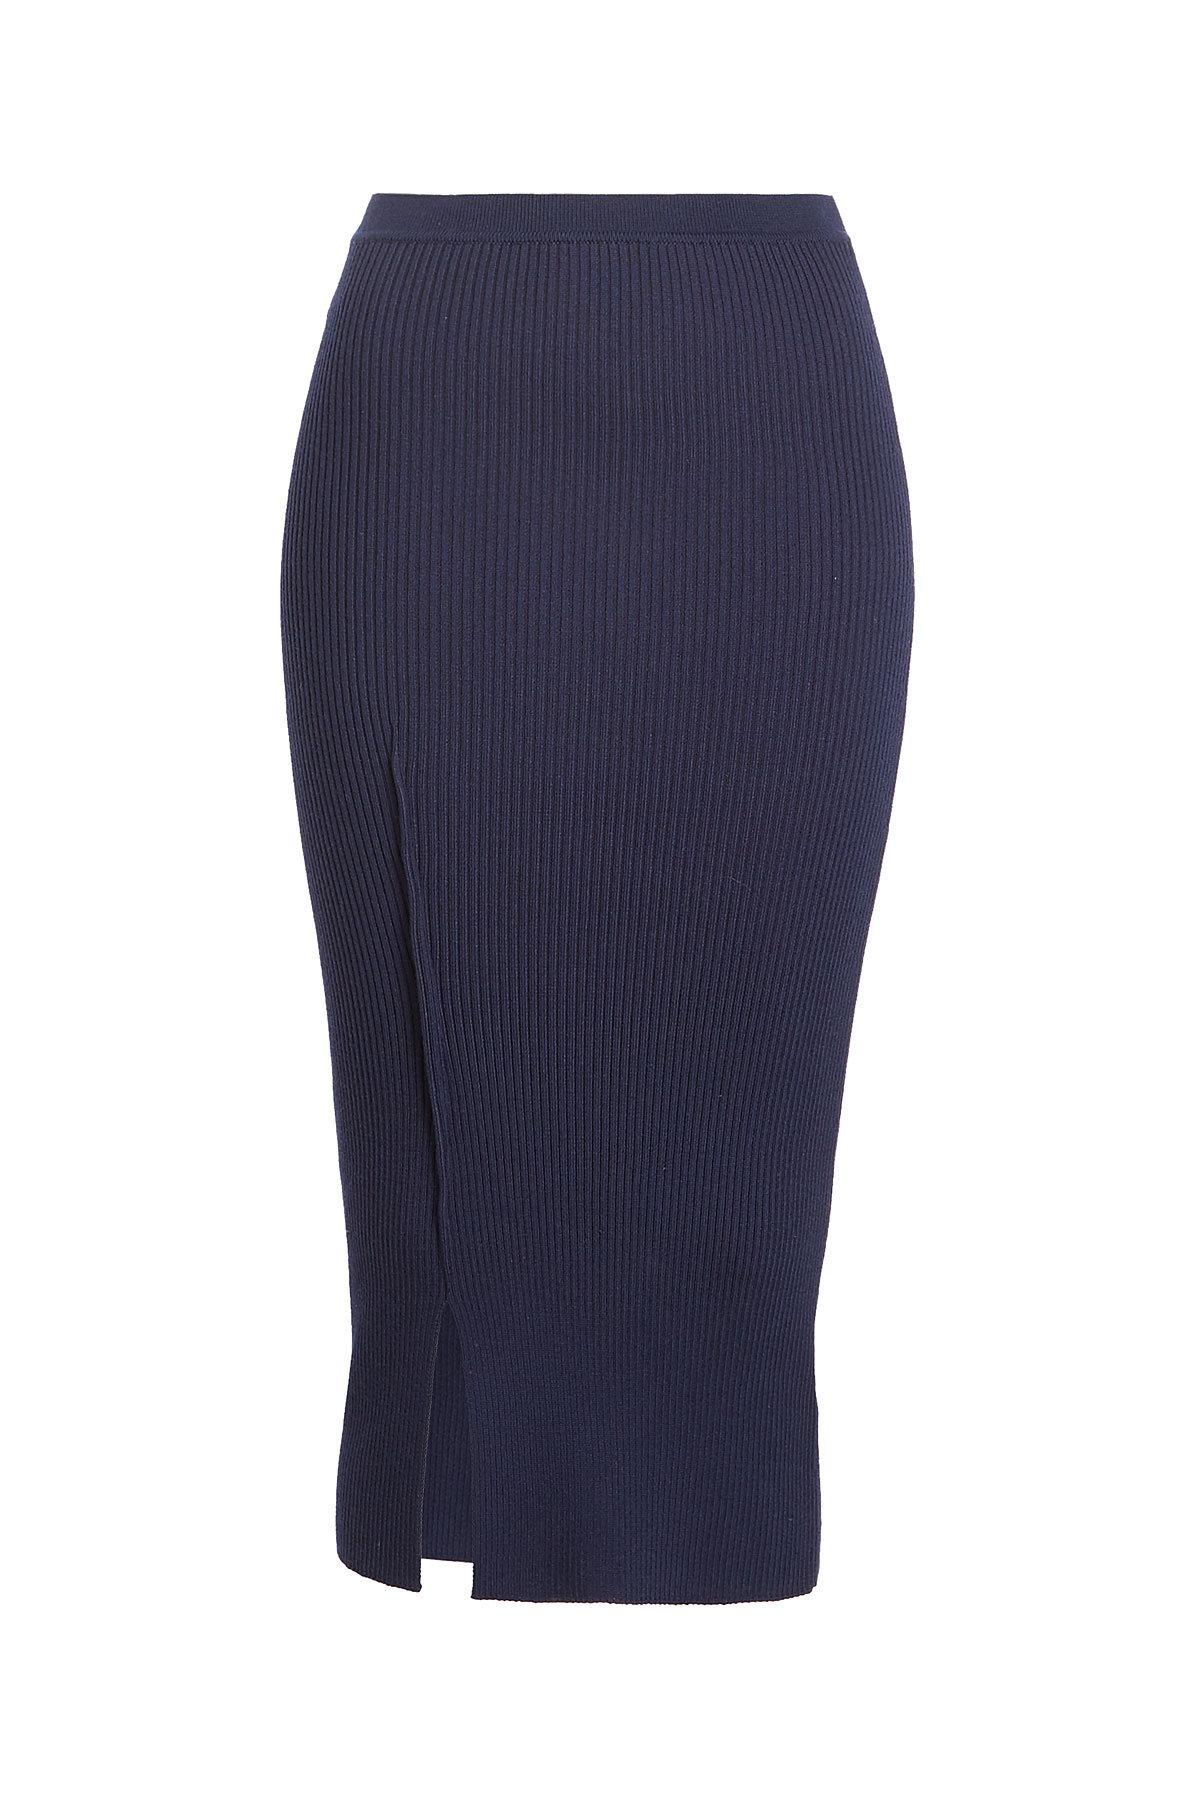 Victoria Beckham Ribbed Knit Pencil Skirt With Wool In Blue